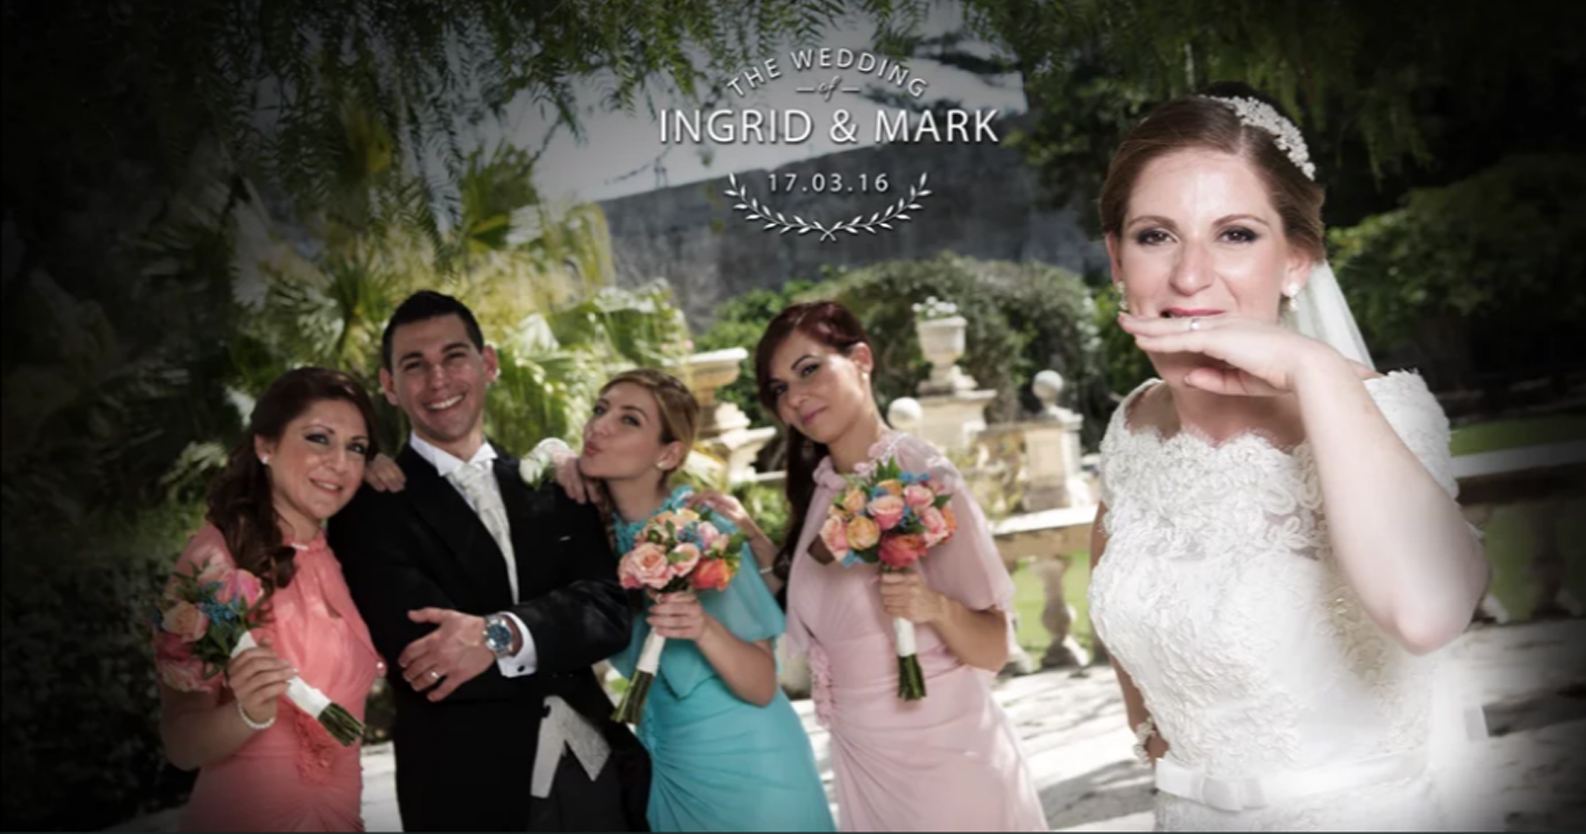 Ingrid & Mark wedding Highlight